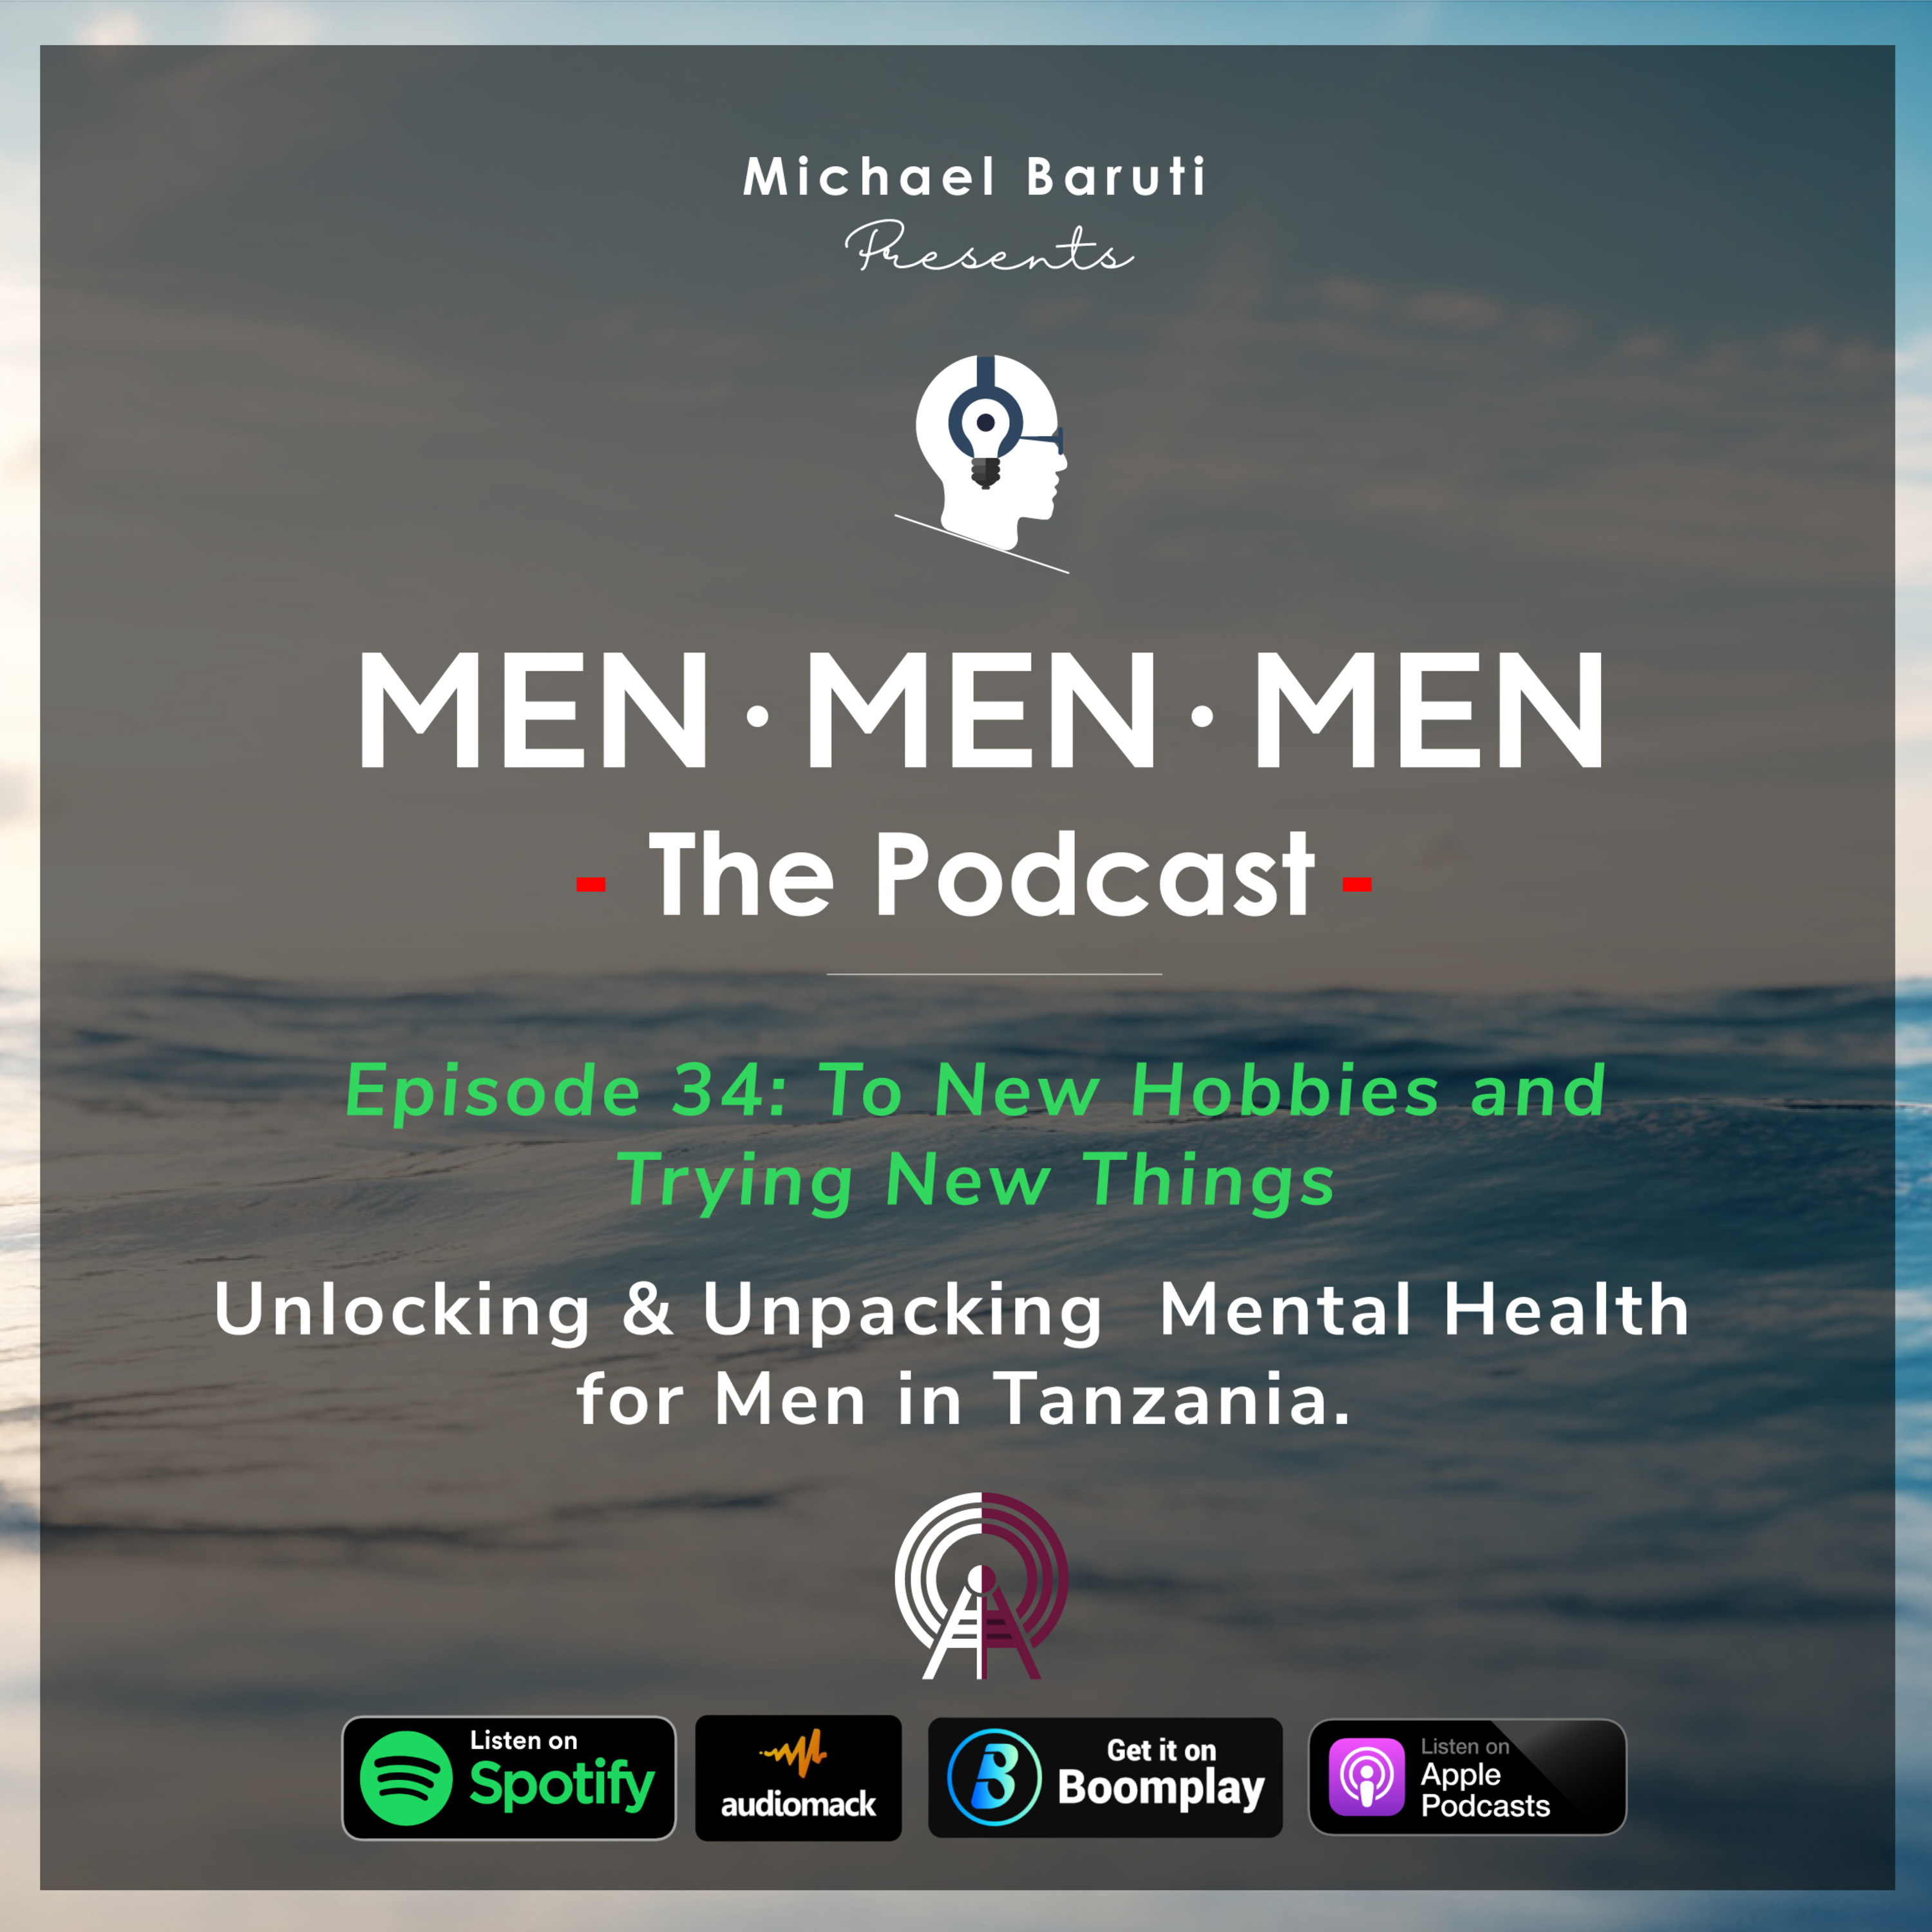 Men The Podcast - Ep 34 - To New Hobbies and Trying New Things